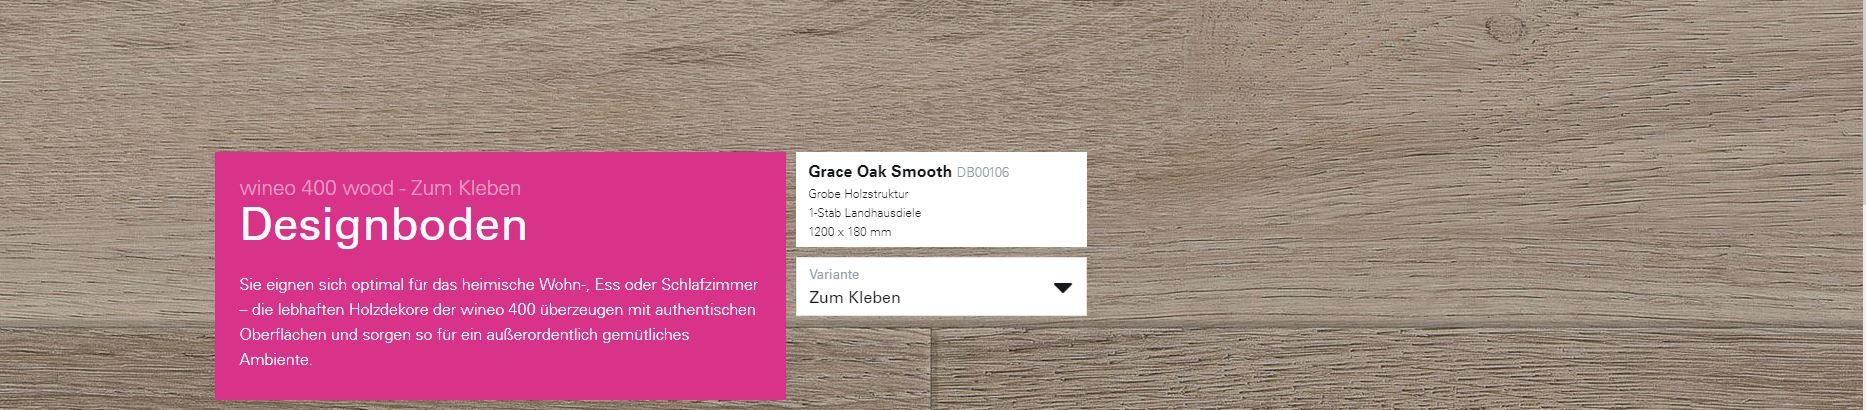 Wineo 400 Grace Oak Smooth DB00106 @ Boden4You.com Design Bodenbelag günstig und Trsuted Shop sicher kaufen